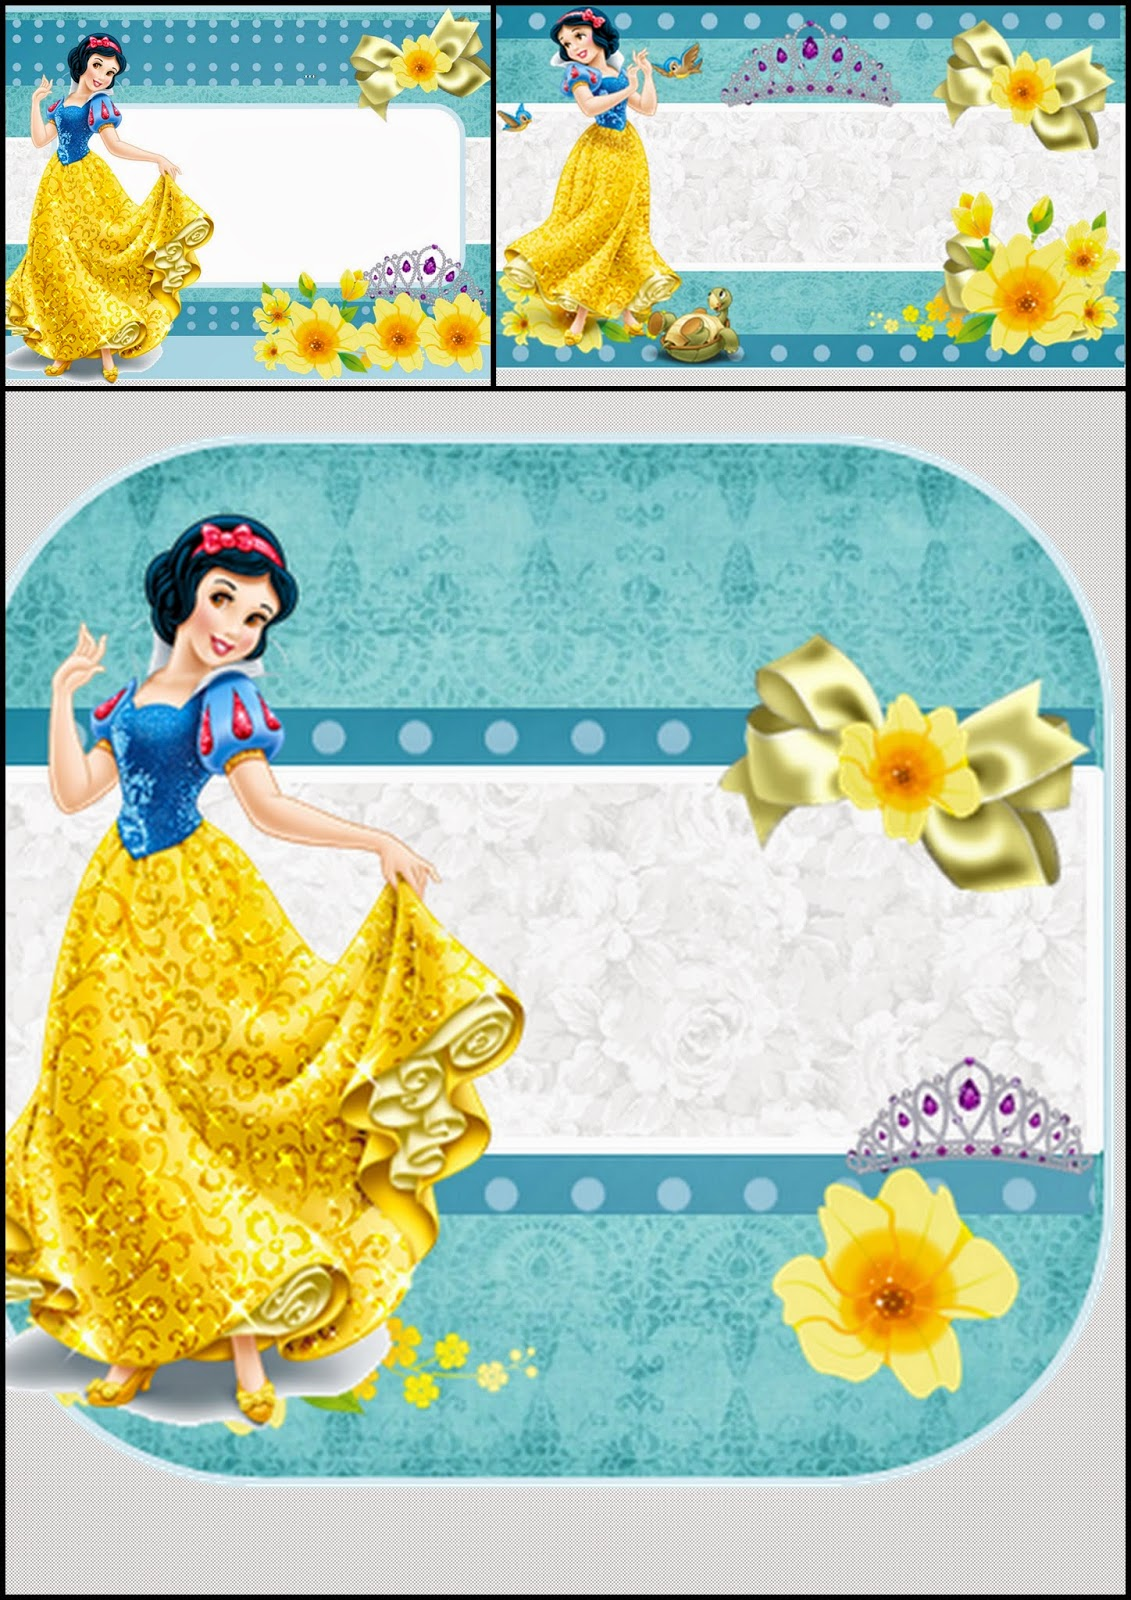 image relating to Snow White Invitations Printable referred to as Snow White Absolutely free Printable Invites or Image Frames. - Oh